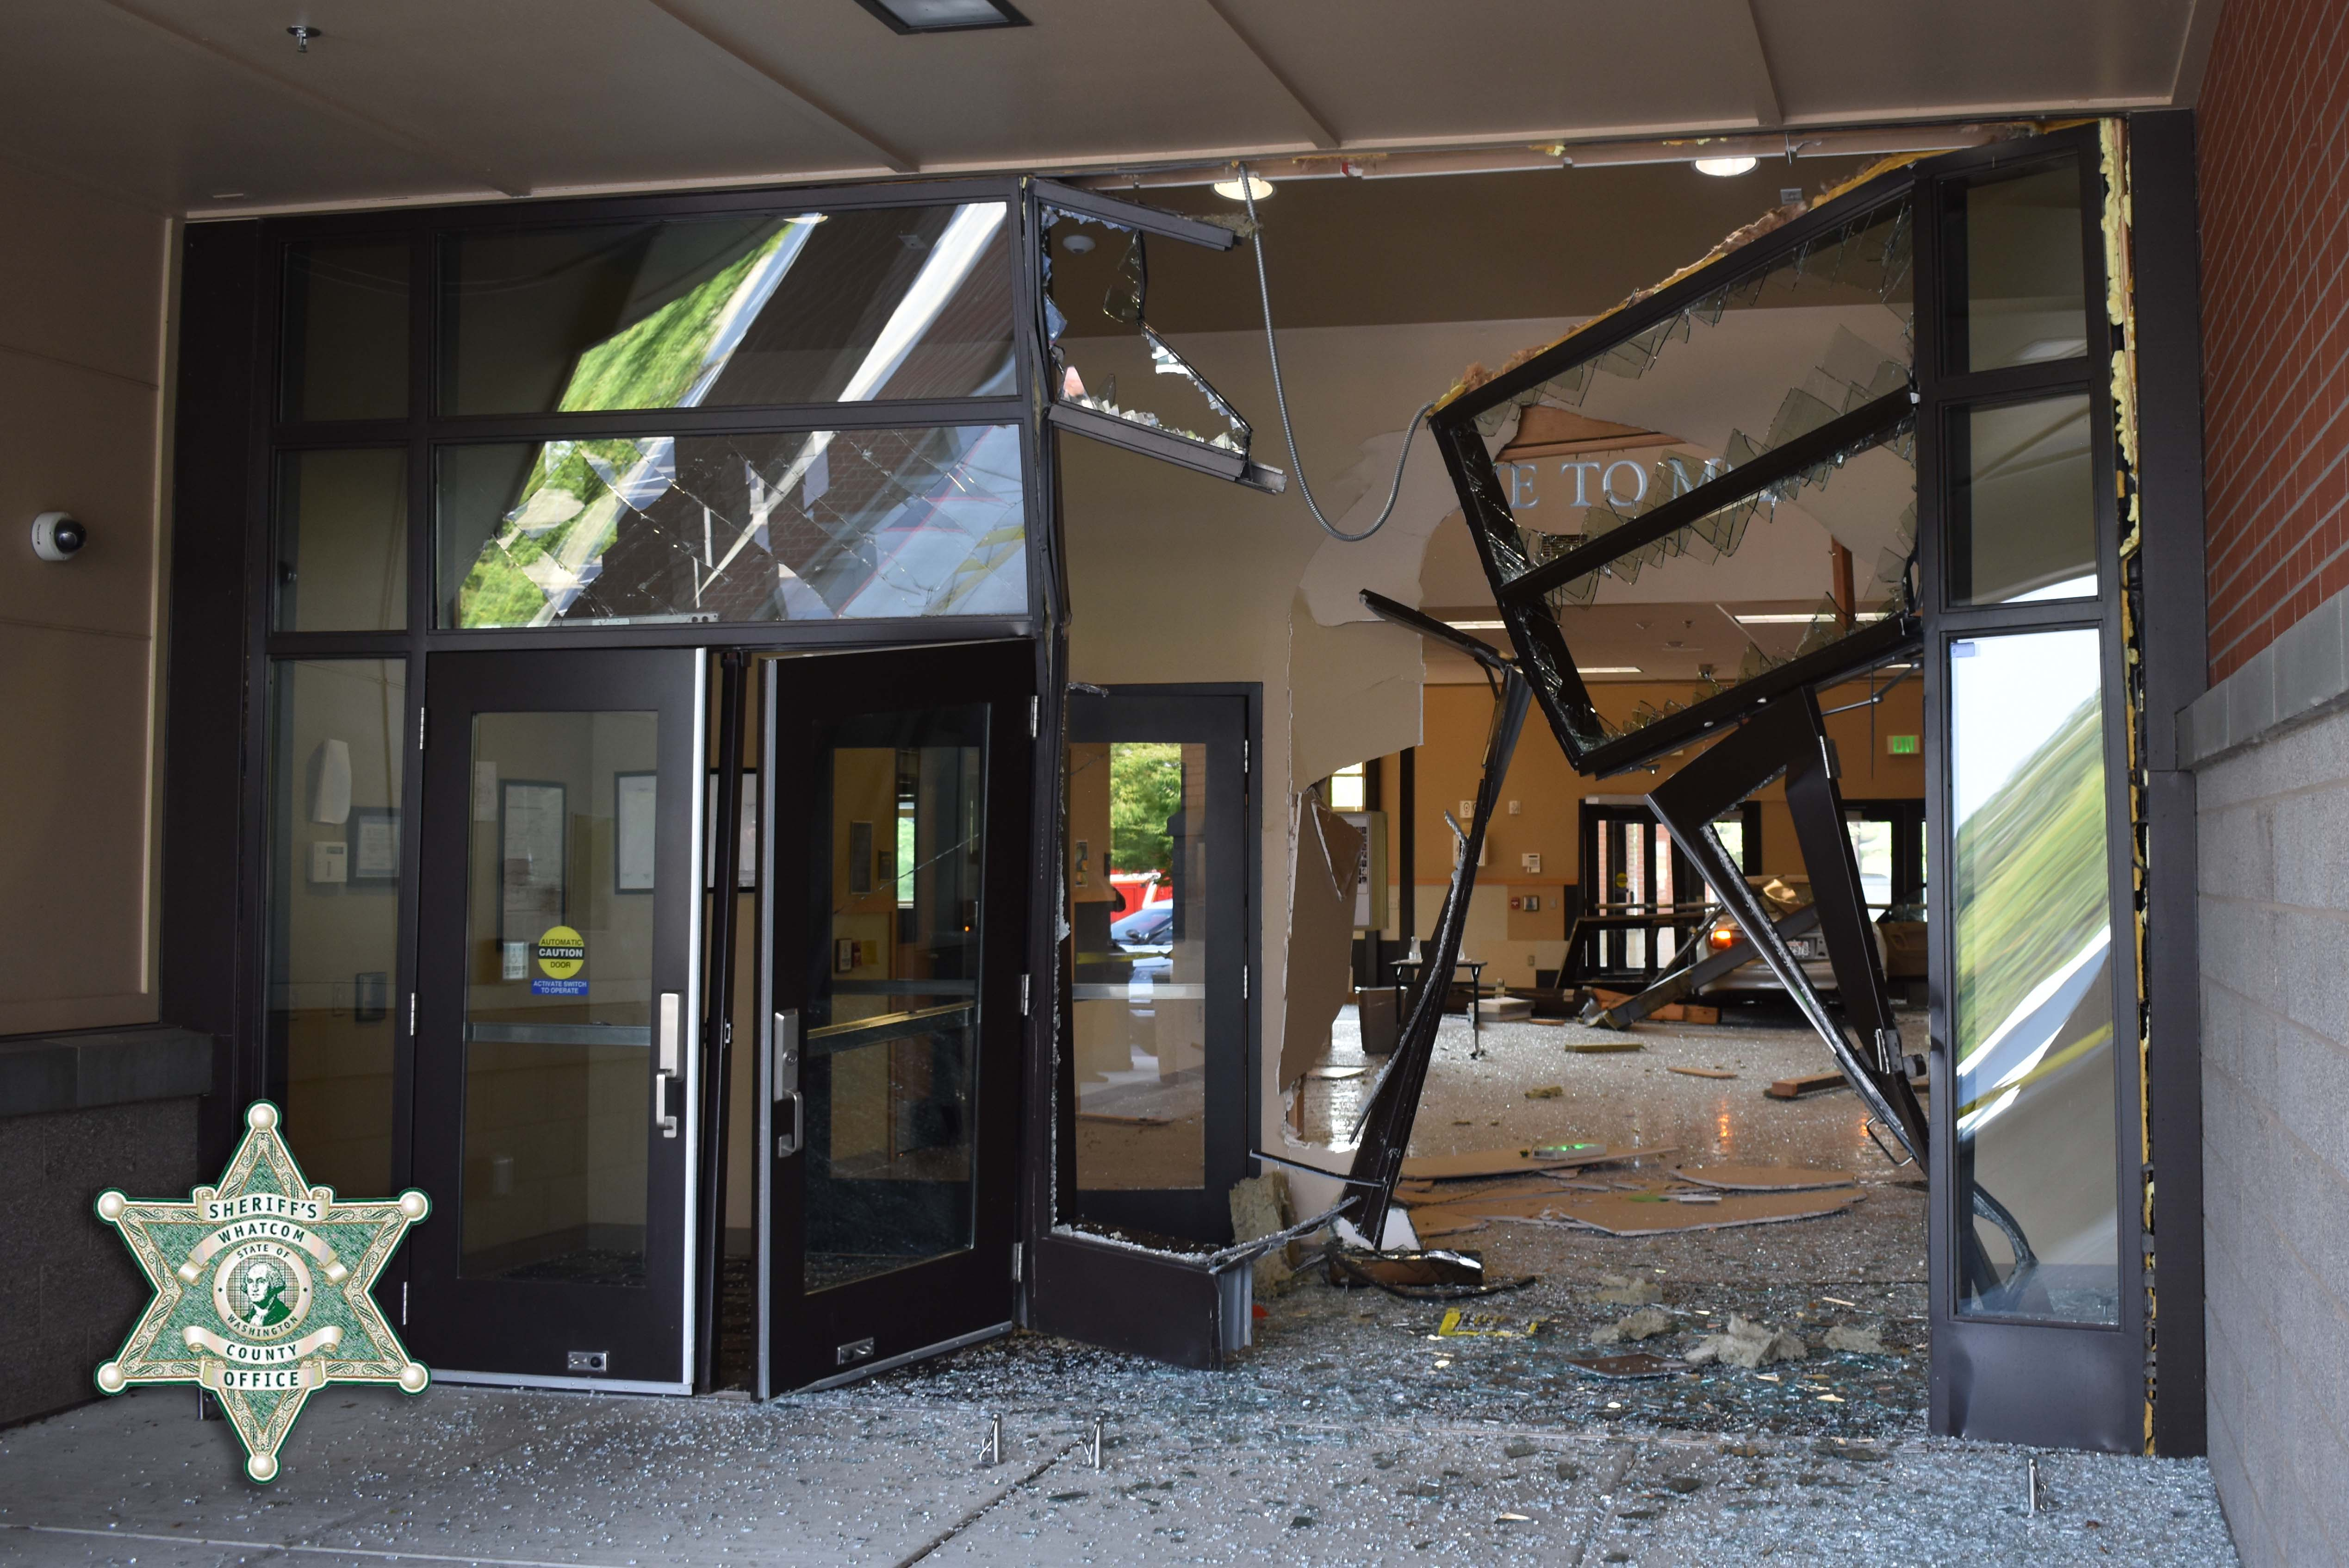 View of damage after a car crashed into a building on the Meridian High School campus (August 12, 2021). Photo courtesy of WCSO